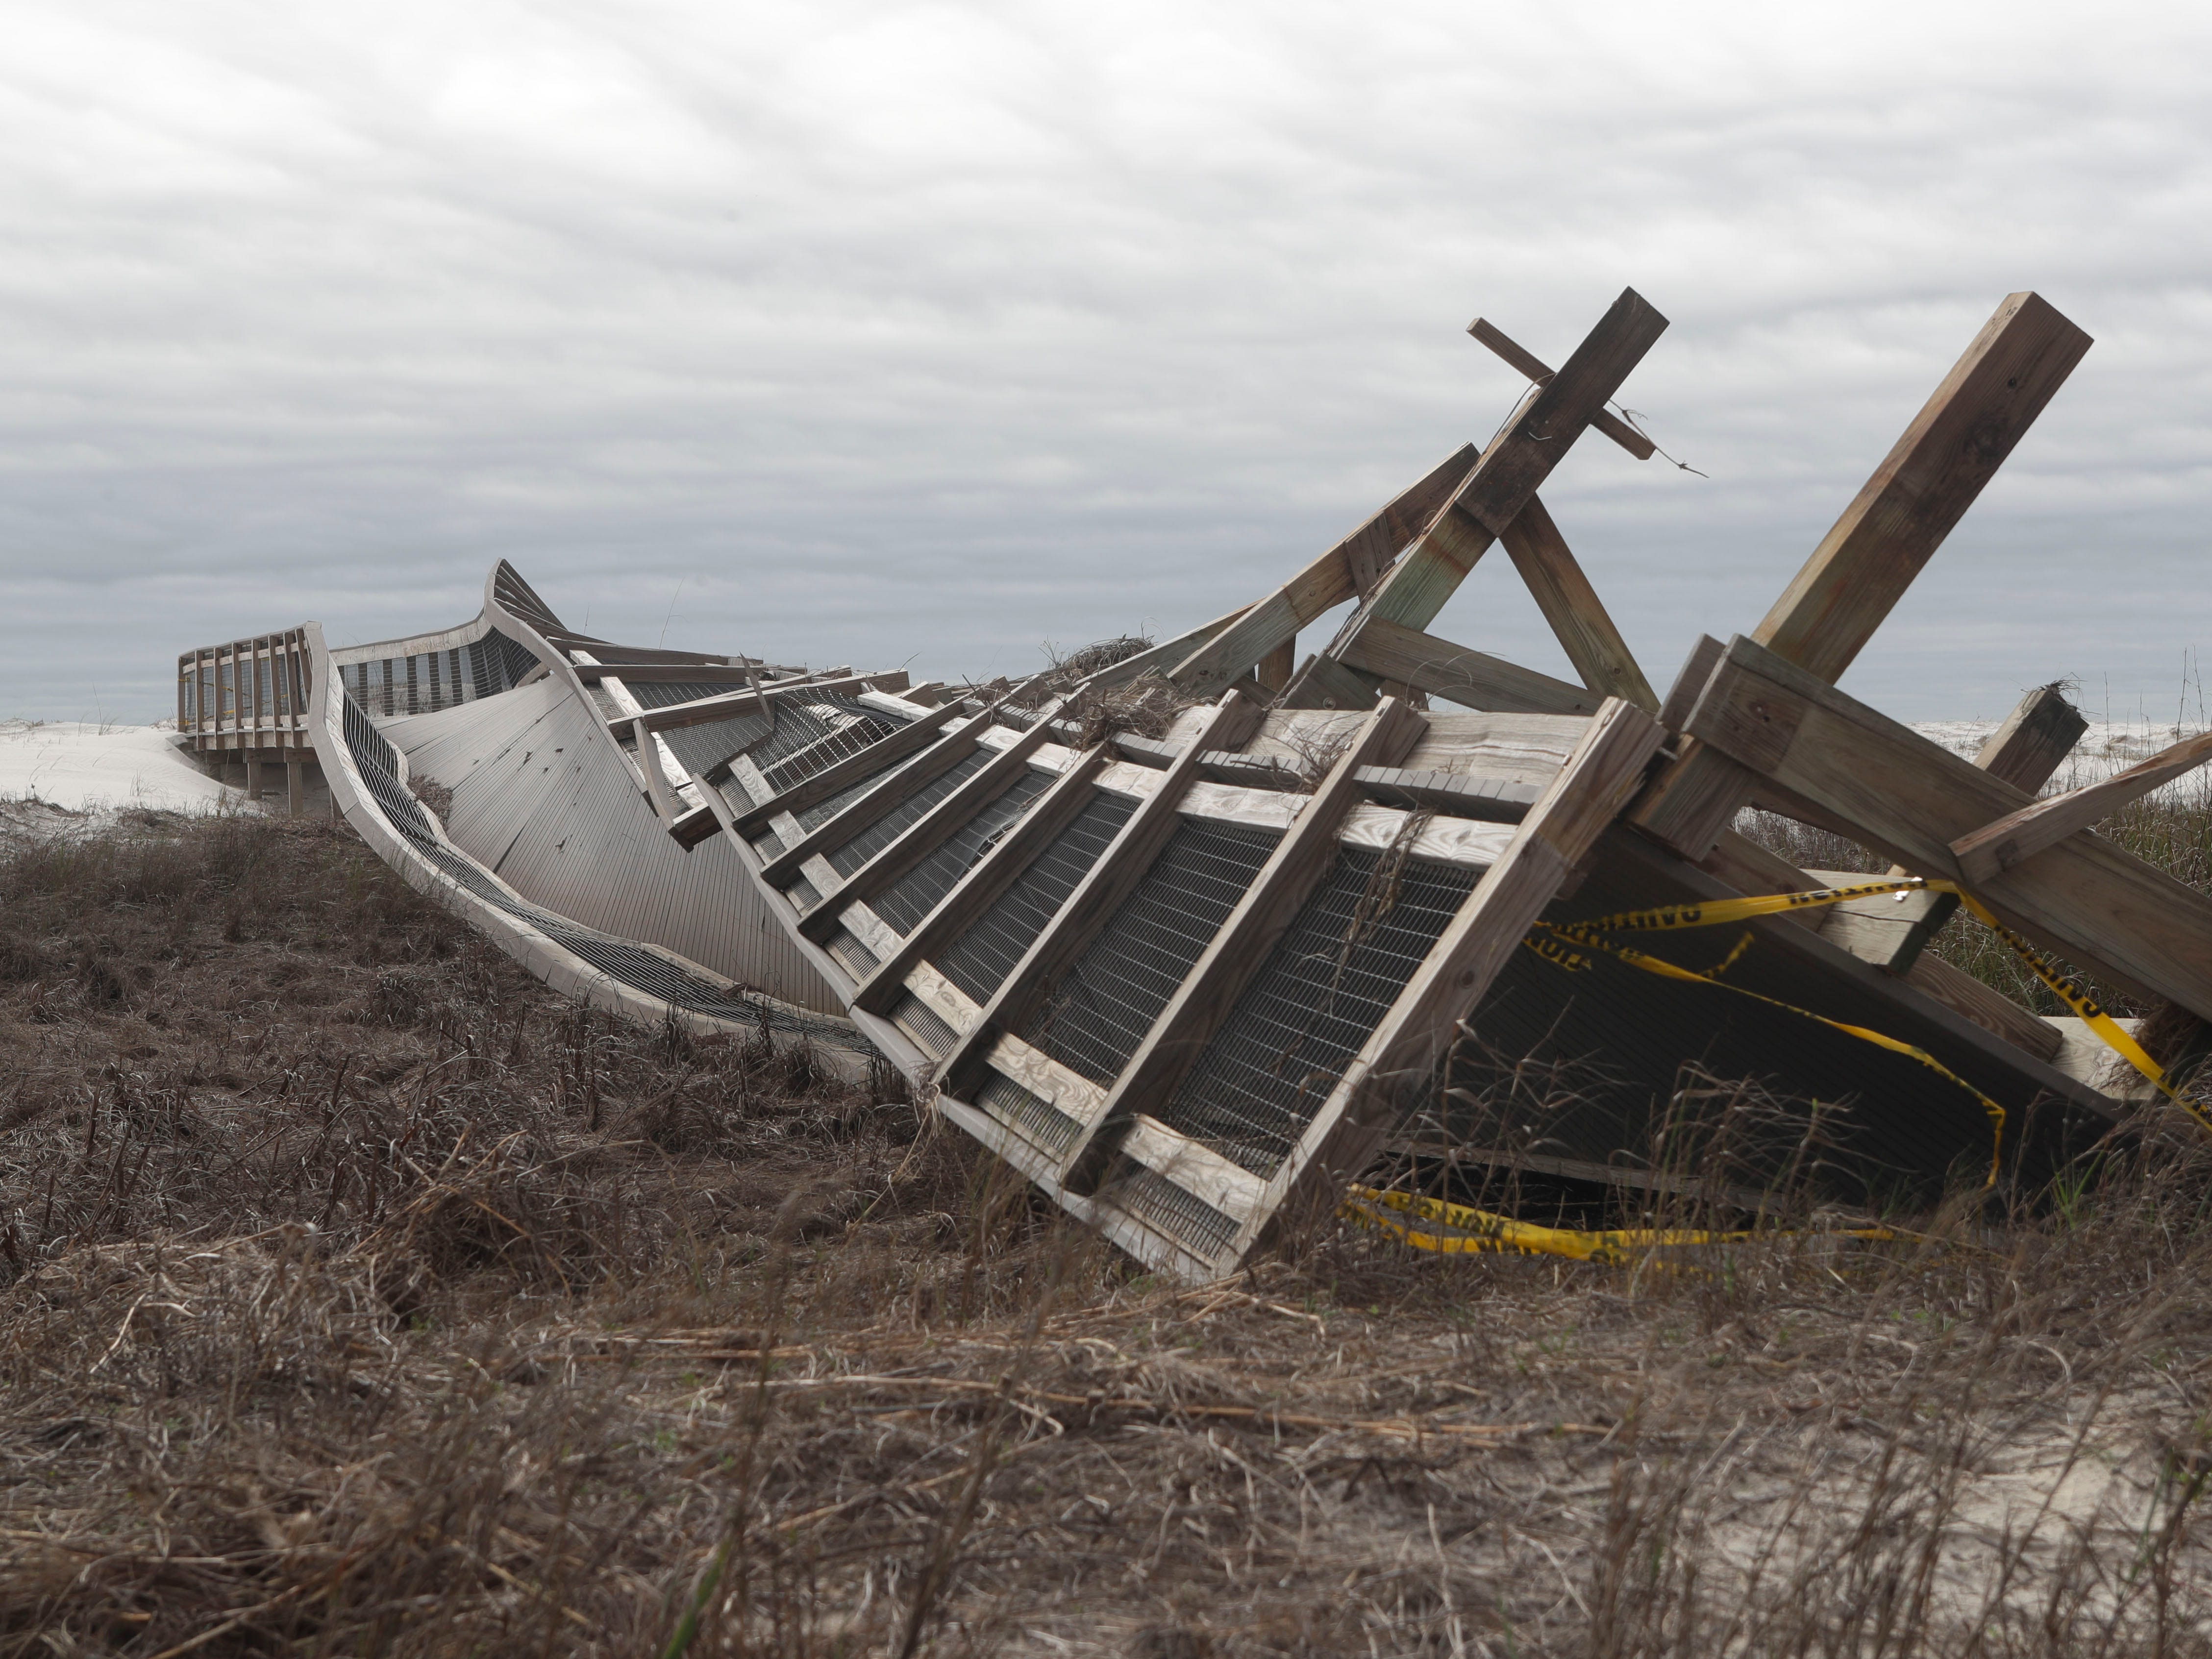 A boardwalk leading out to the beach in St. George Island State Park is now spiraled and unusable, Tuesday Feb. 19, 2019. The boardwalk was damaged by Hurricane Michal in Oct. 2018.